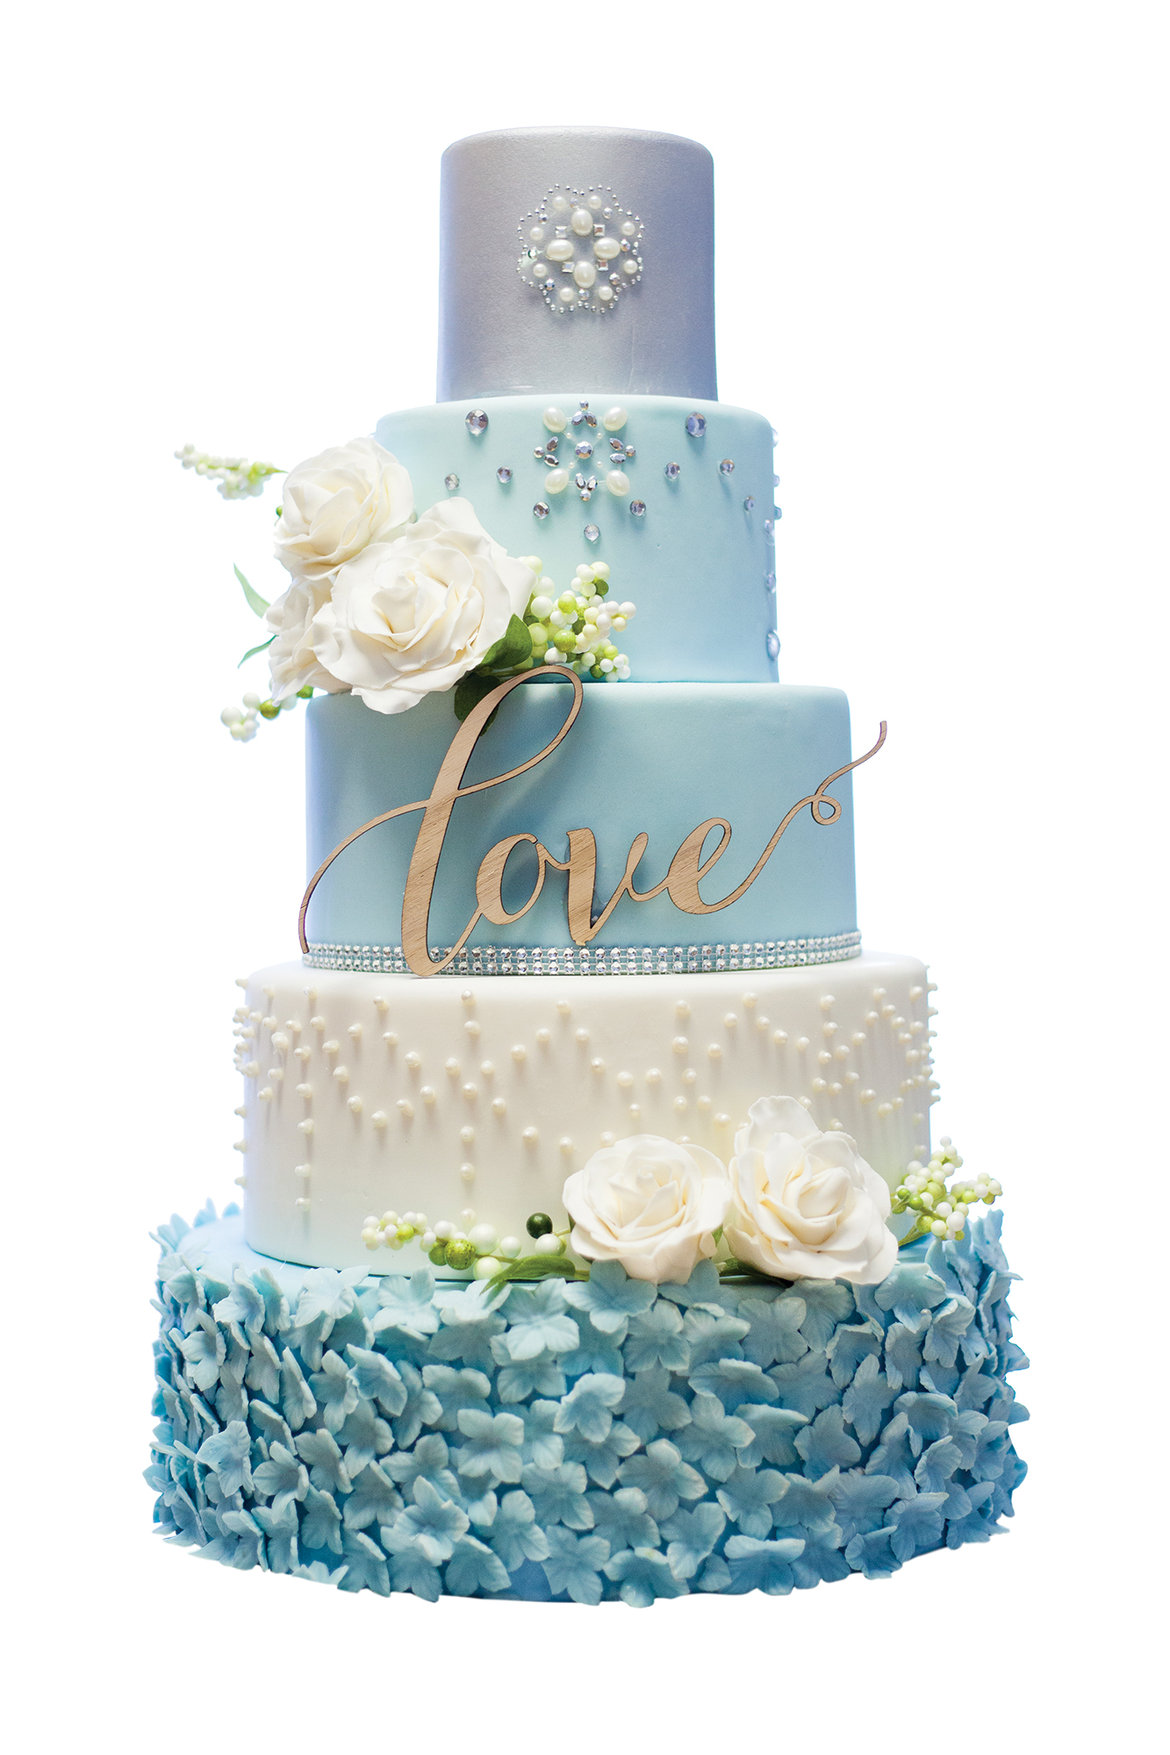 Different shades of blue icing on a 5 tier wedding cake